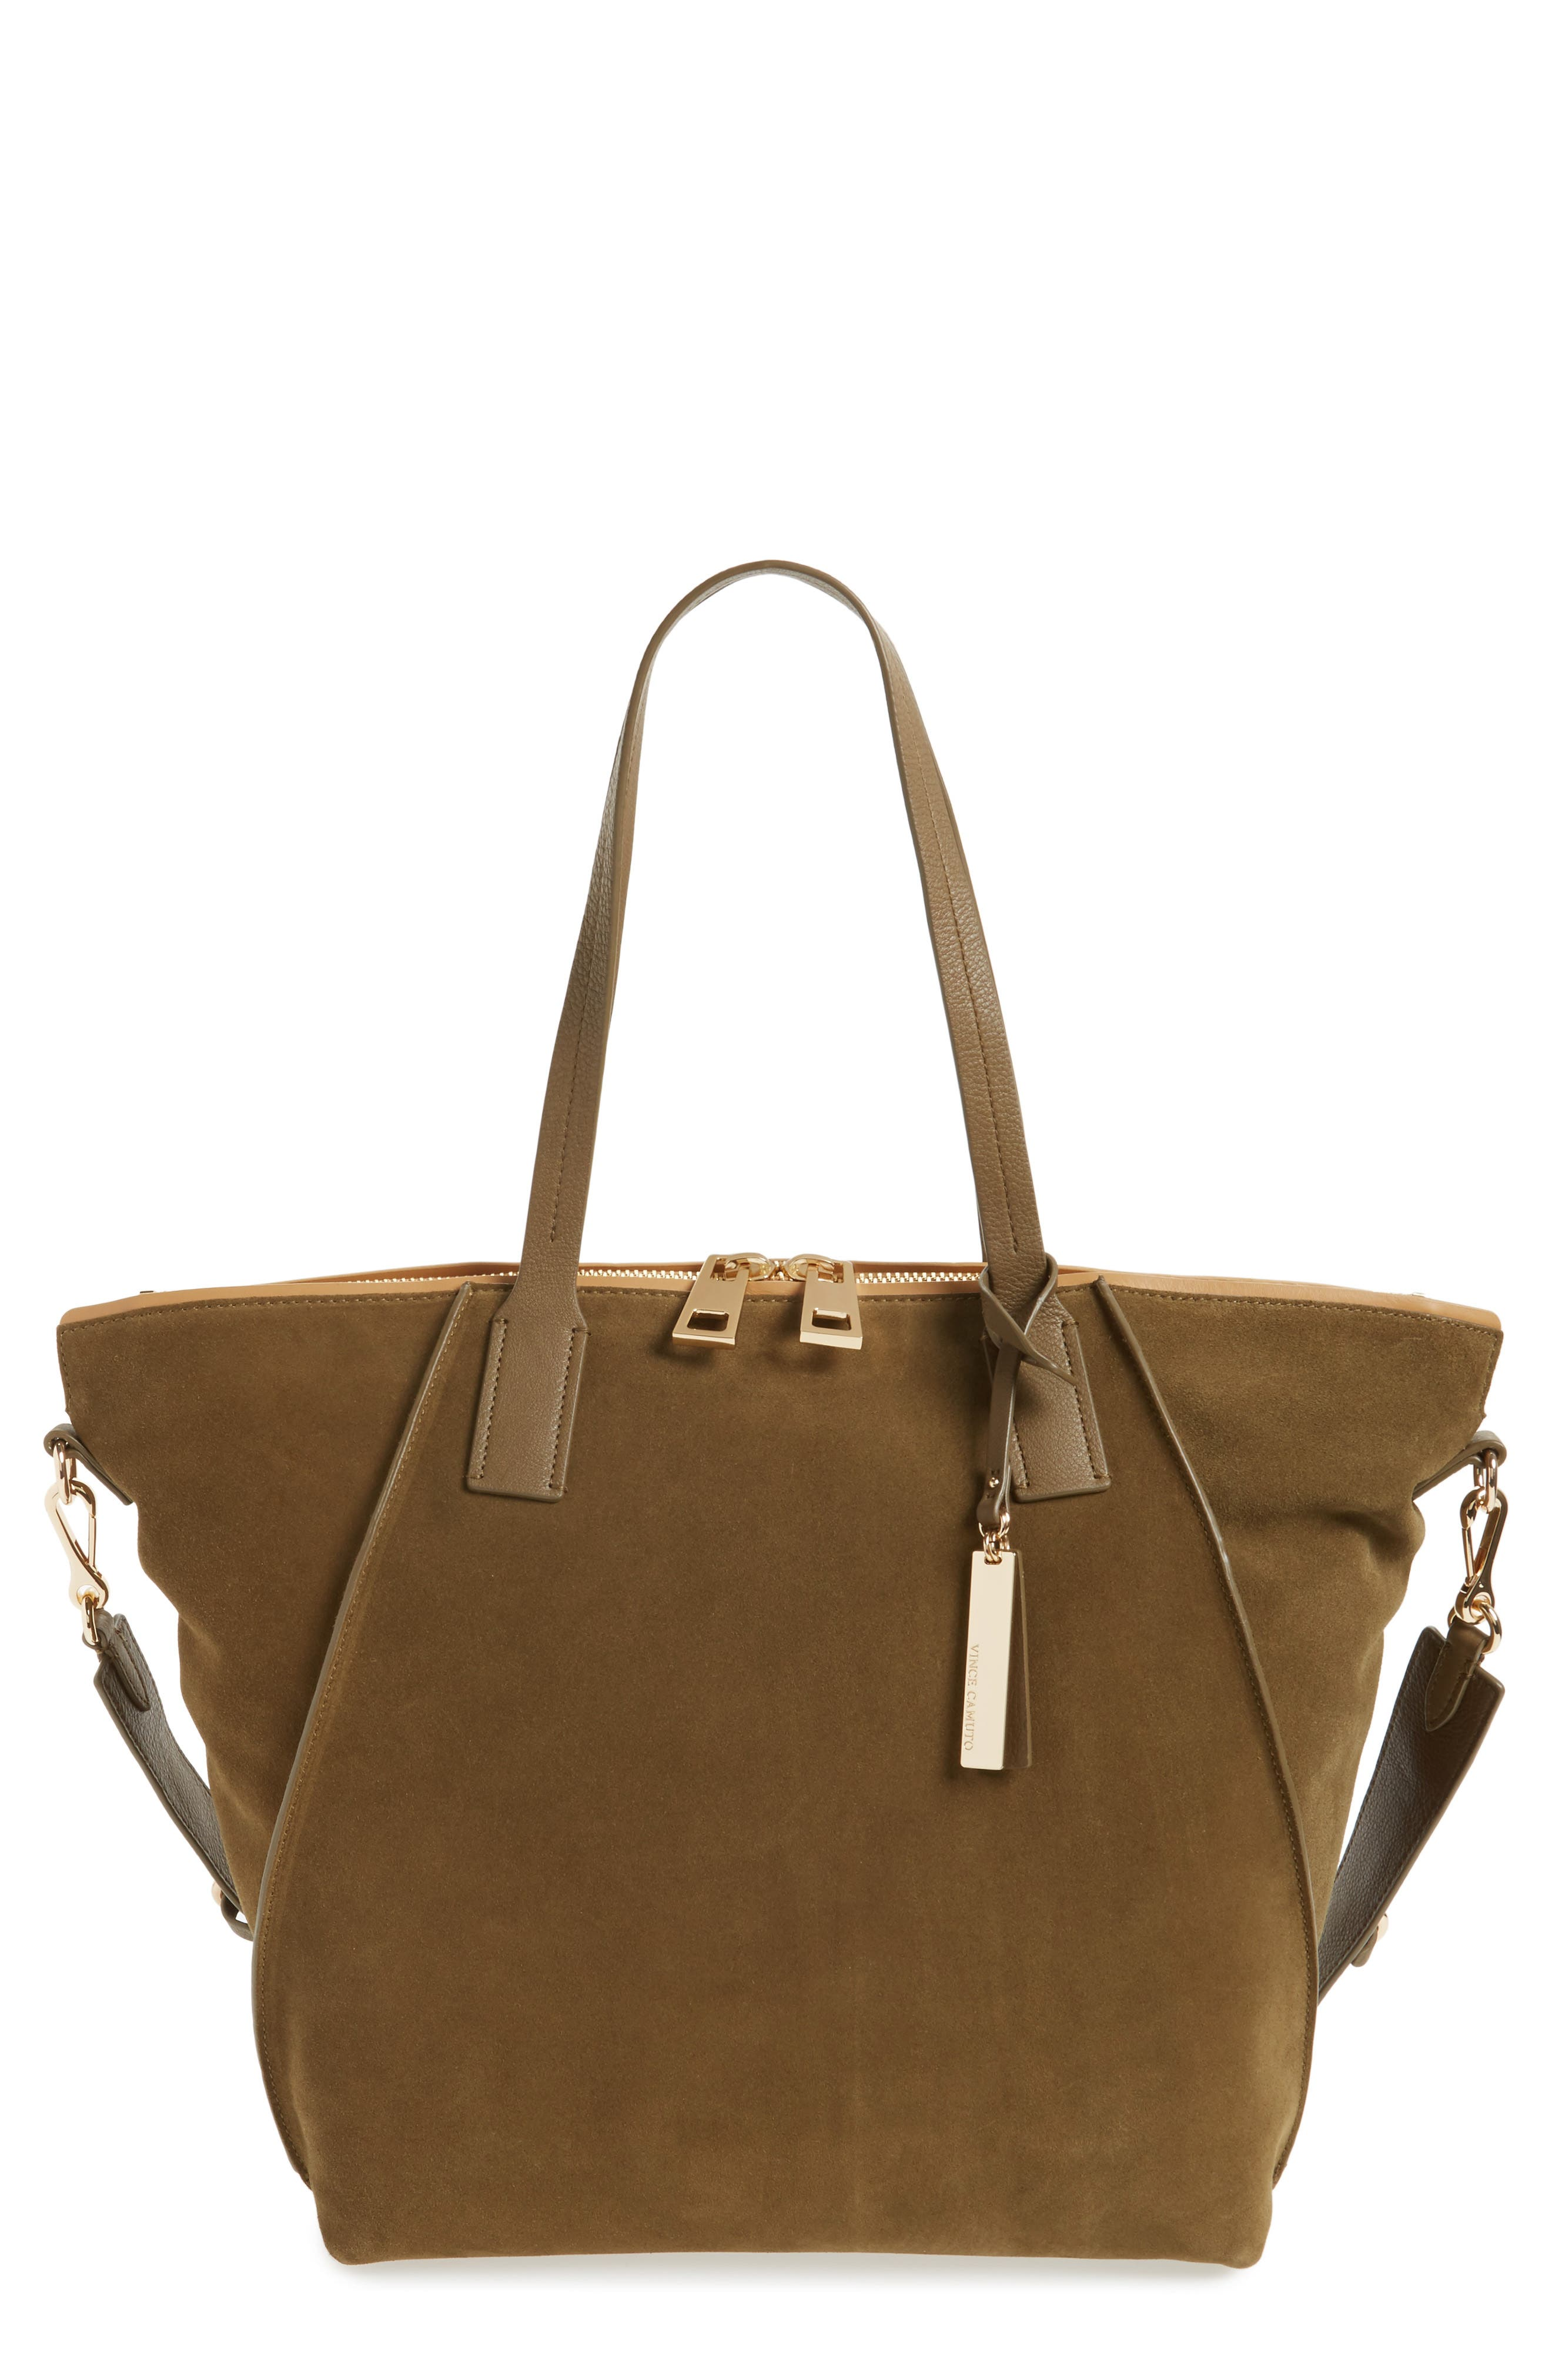 Alternate Image 1 Selected - Vince Camuto Alicia Suede & Leather Tote